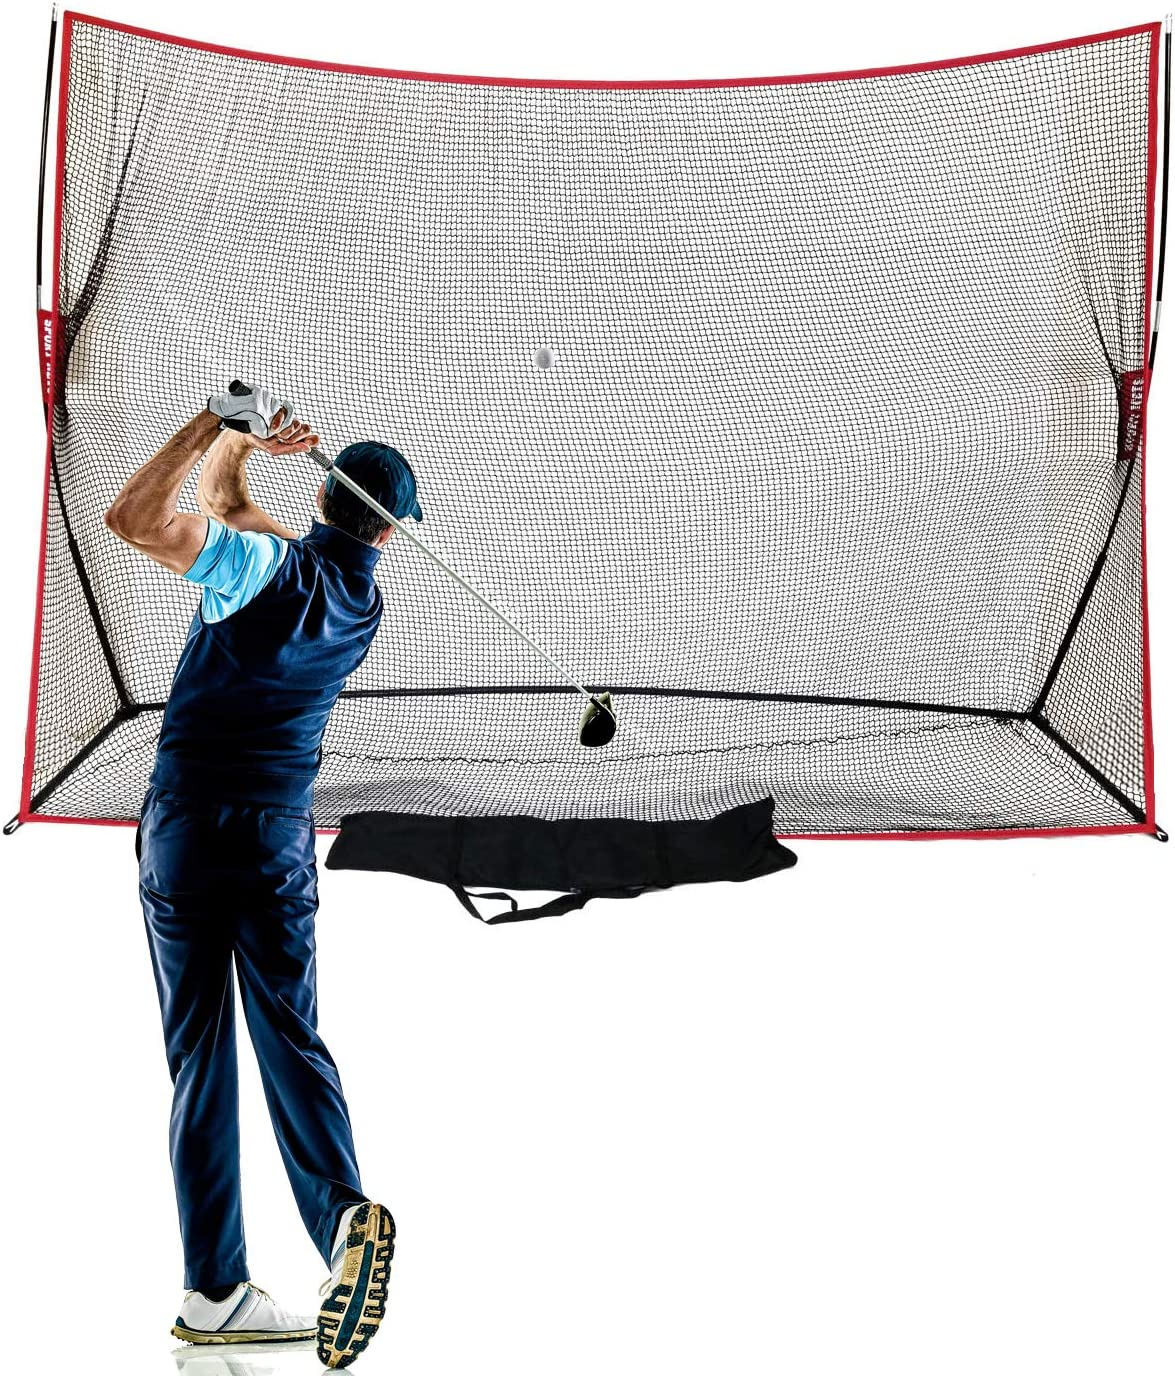 Hit Run Steal Heavy Duty Golf Net 10 X 7 - Perfect Golf Practice Net for Indoor Outdoor Garage Backyard Golf Practice. Golf Hitting Net is A Portable Home Driving Range. Comes W/Carry Bag